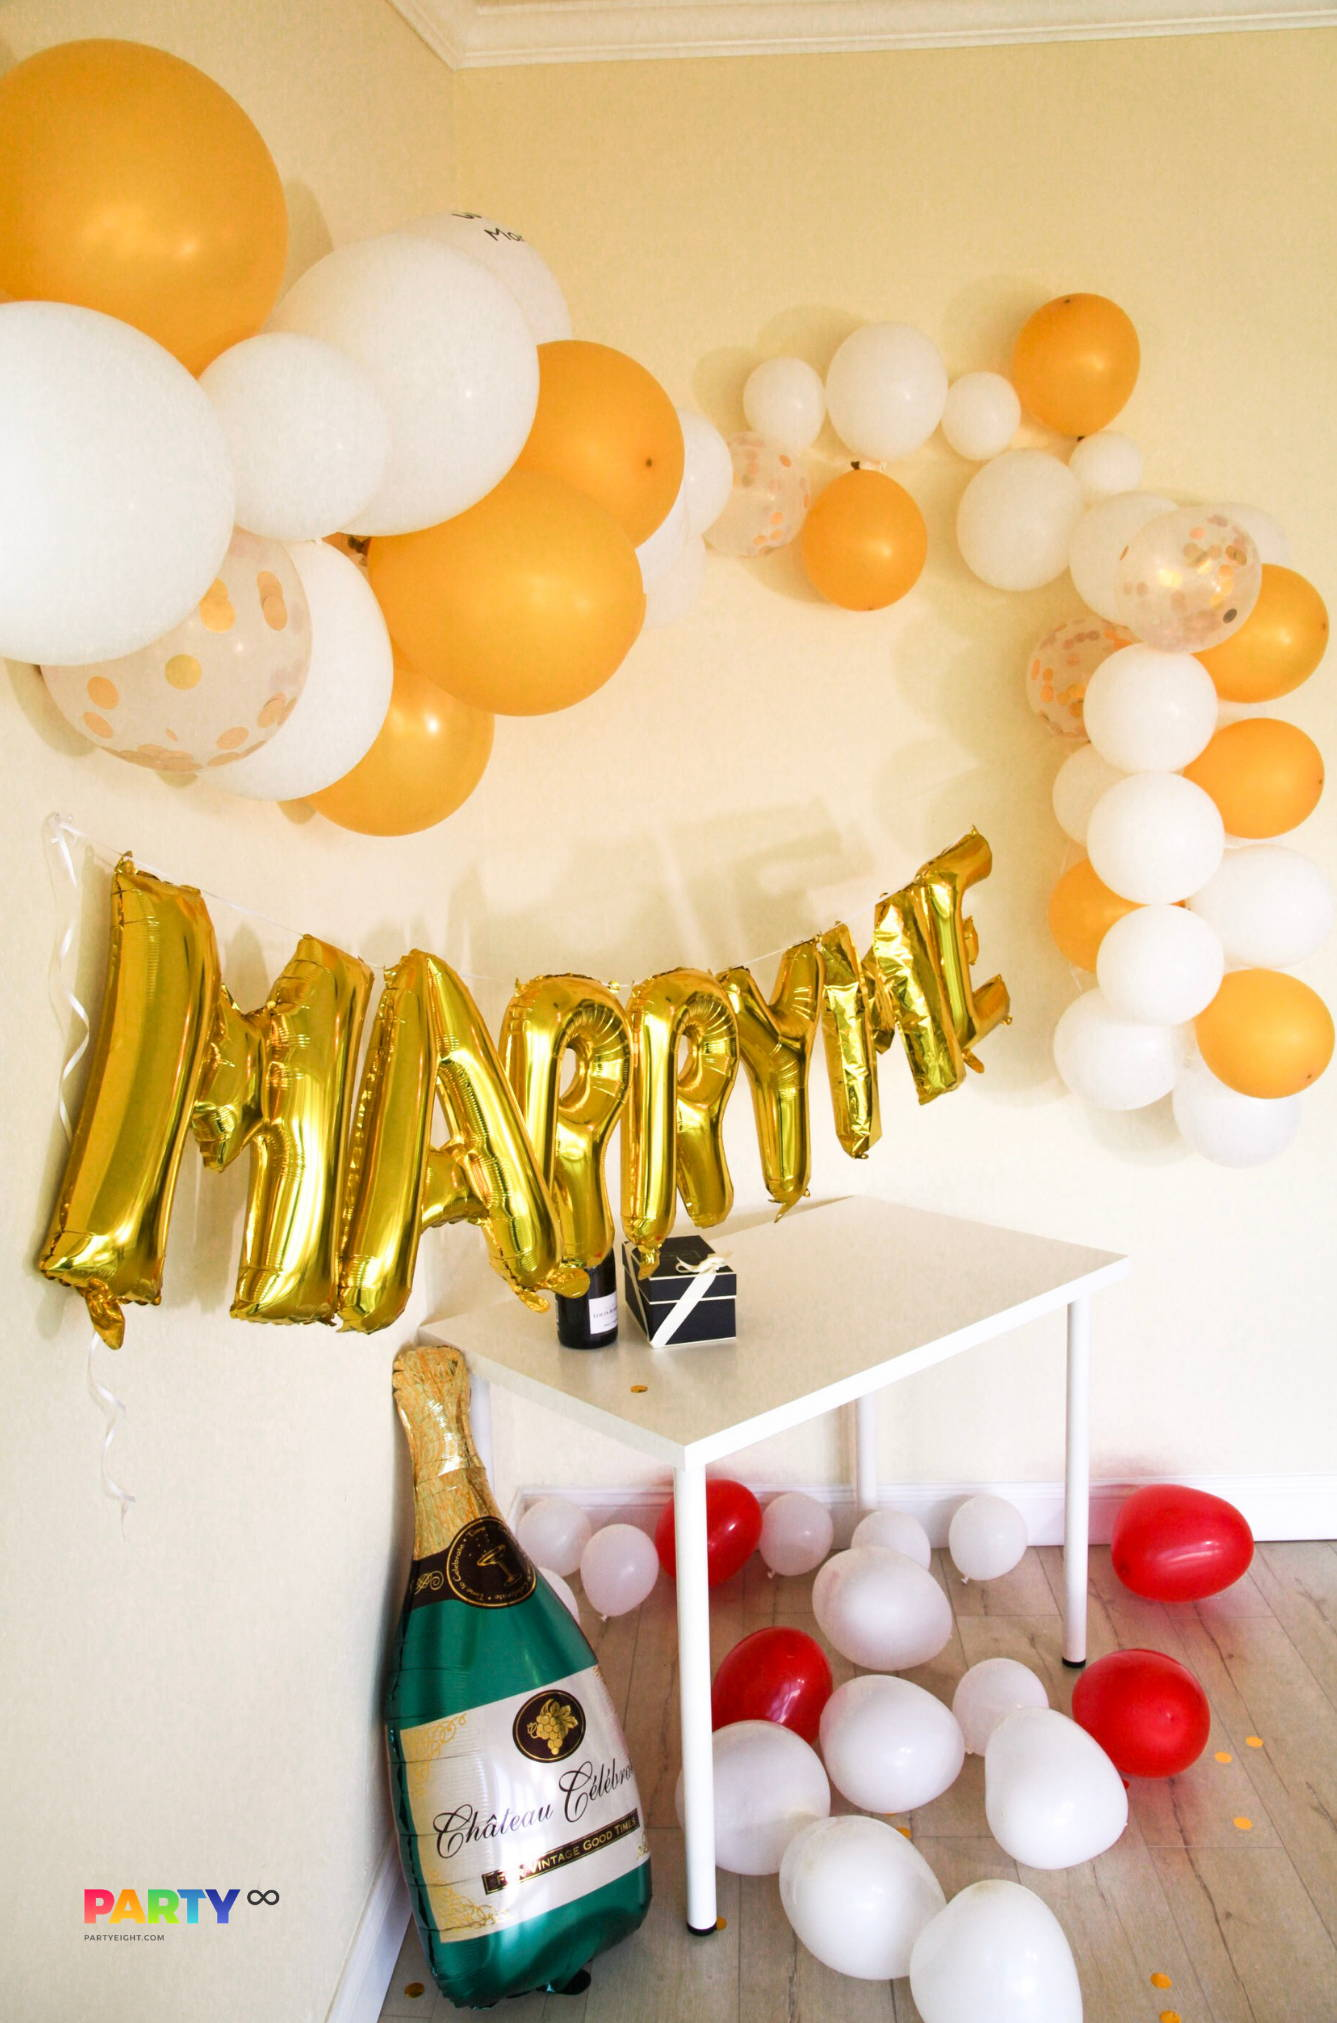 Top Marriage Proposal Ideas At Home Party Eight